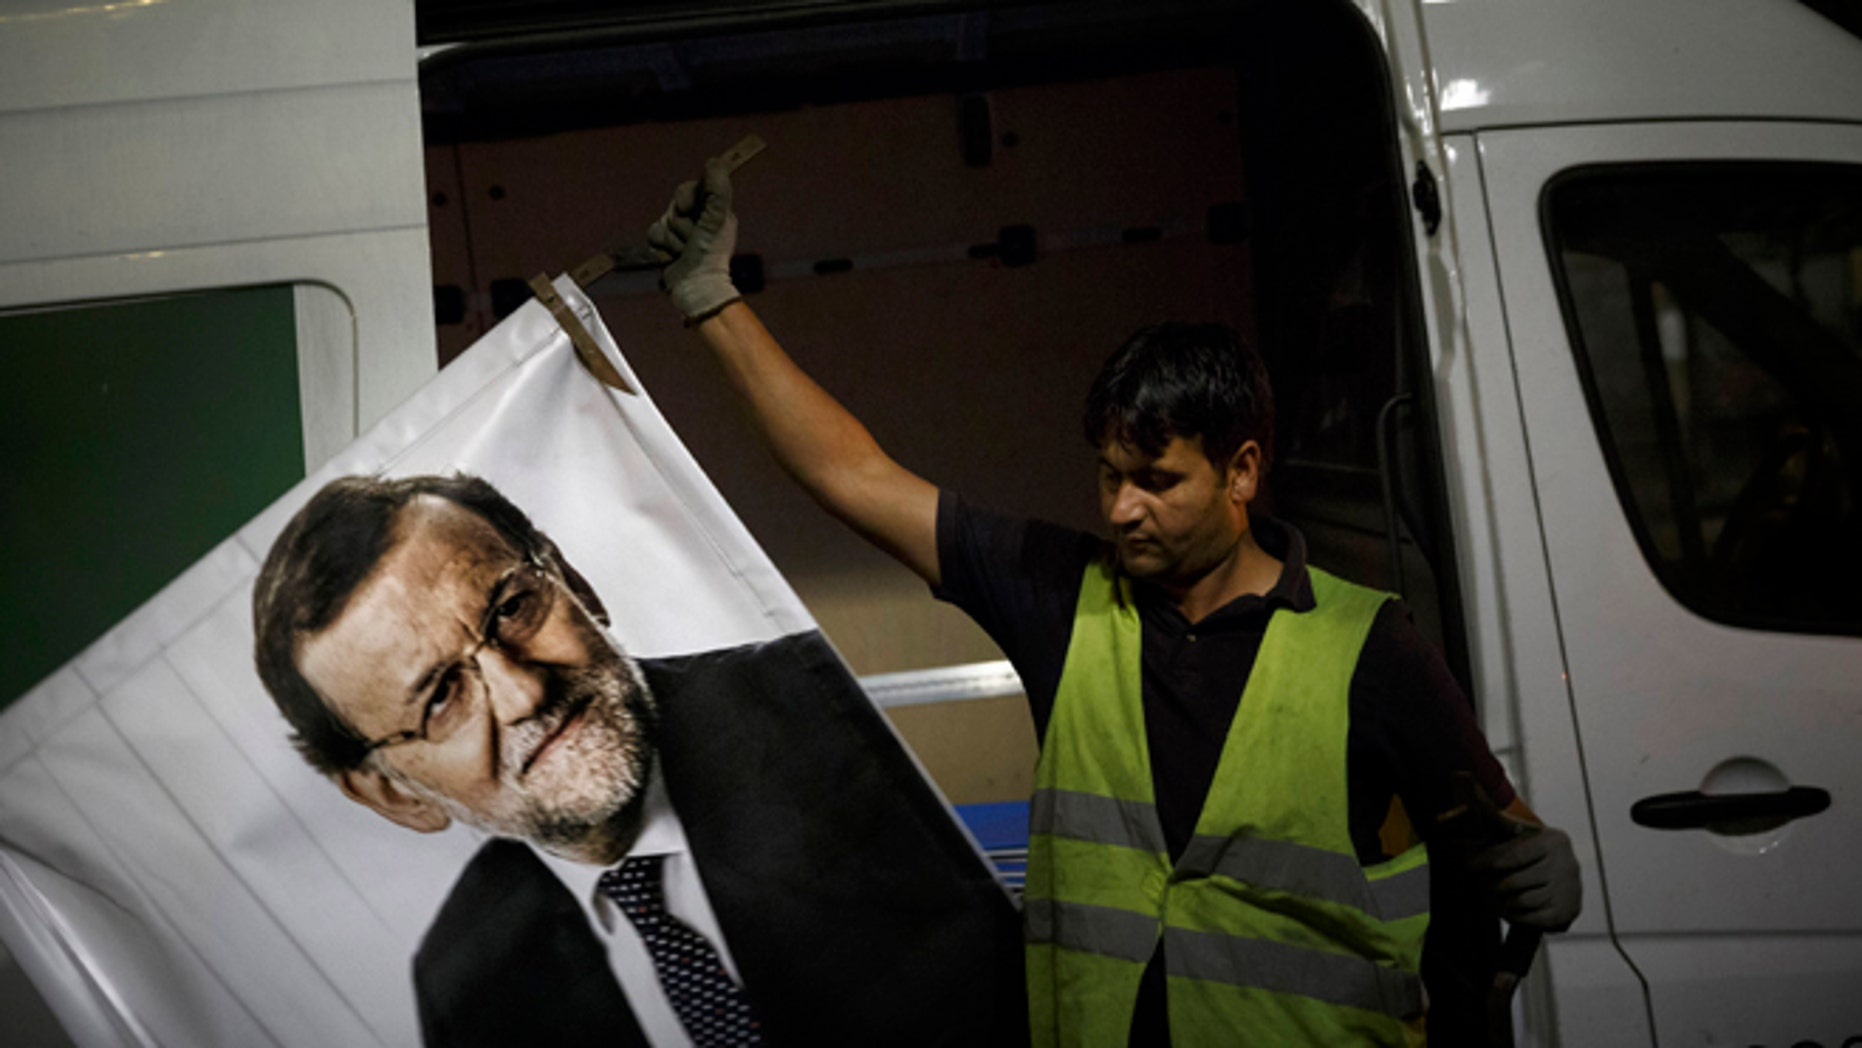 A worker removes a campaign poster for the national elections depicting Spain's Prime Minister and Popular Party candidate Mariano Rajoy, in Madrid, Spain, Monday, Dec. 21, 2015. A strong showing Sunday by a pair of upstart parties in Spain's general election upended the country's traditional two-party system, with the ruling Popular Party winning the most votes but falling far short of a parliamentary majority and at risk of being booted from power. (AP Photo/Daniel Ochoa de Olza)